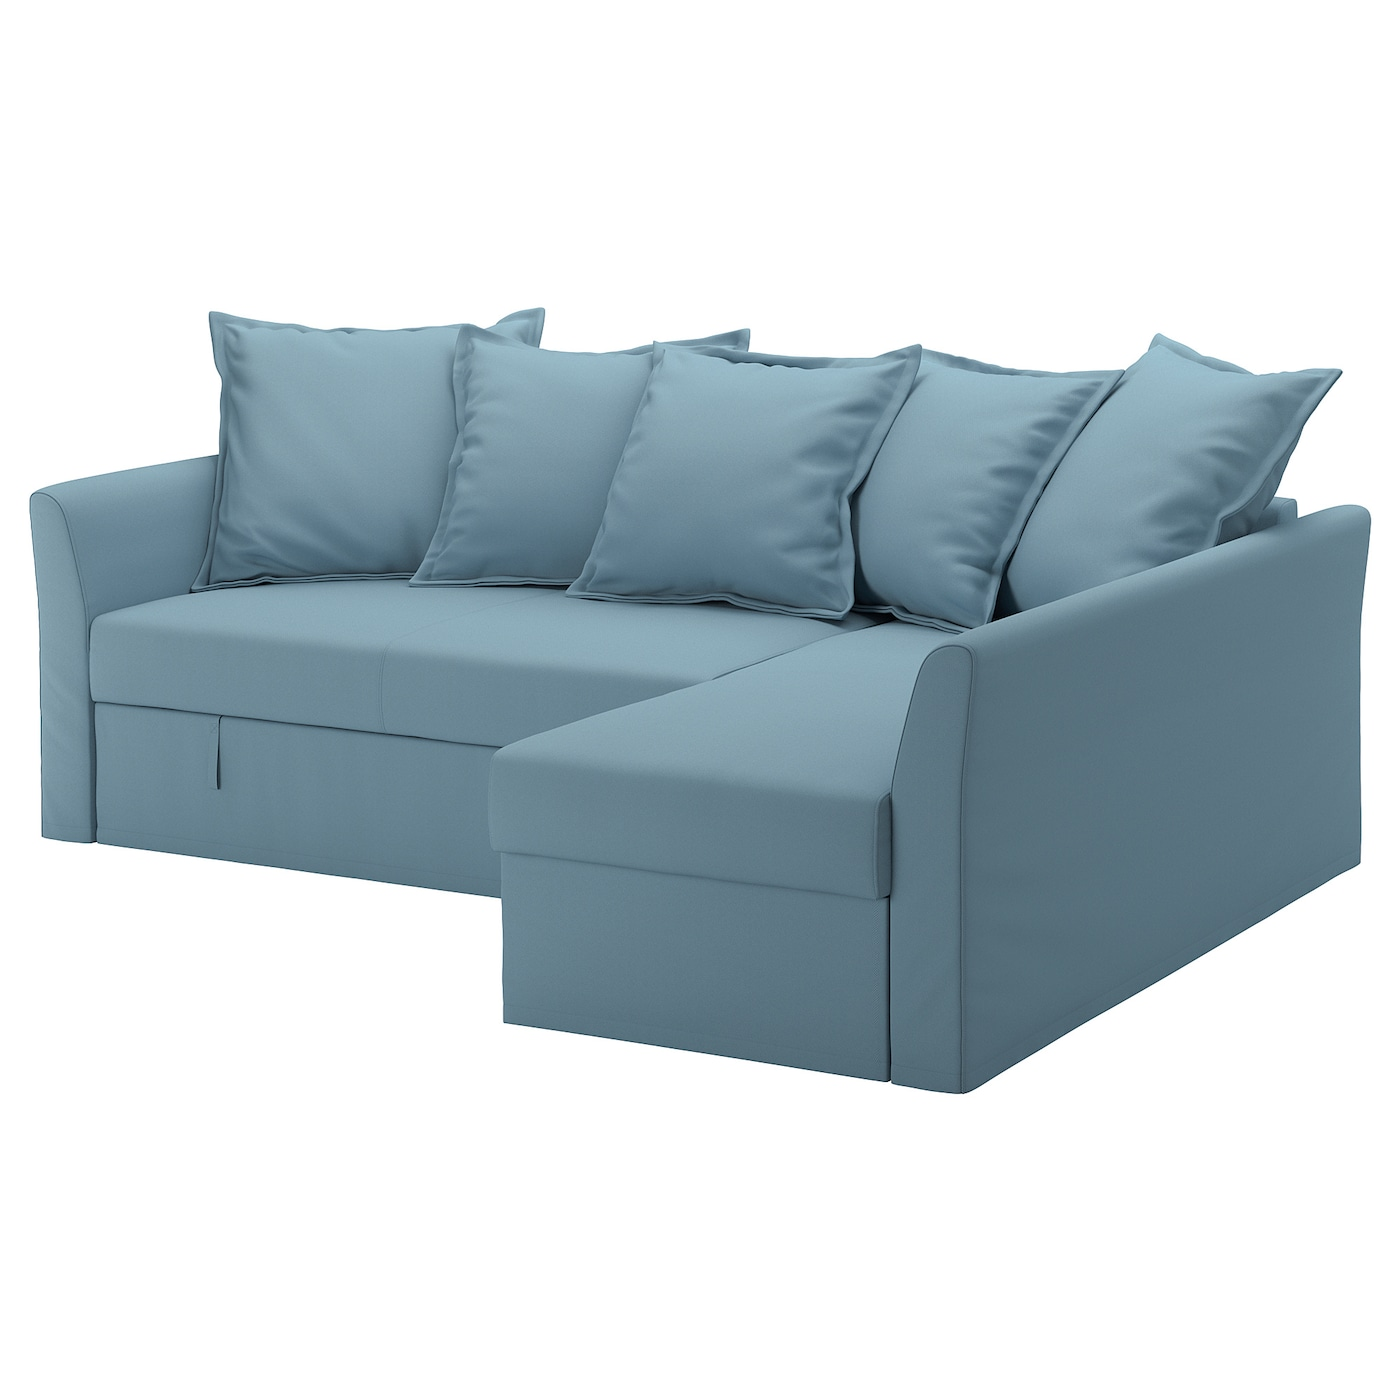 Light Sofa Bed Holmsund Corner Sofa Bed Gr 228 Sbo Light Blue